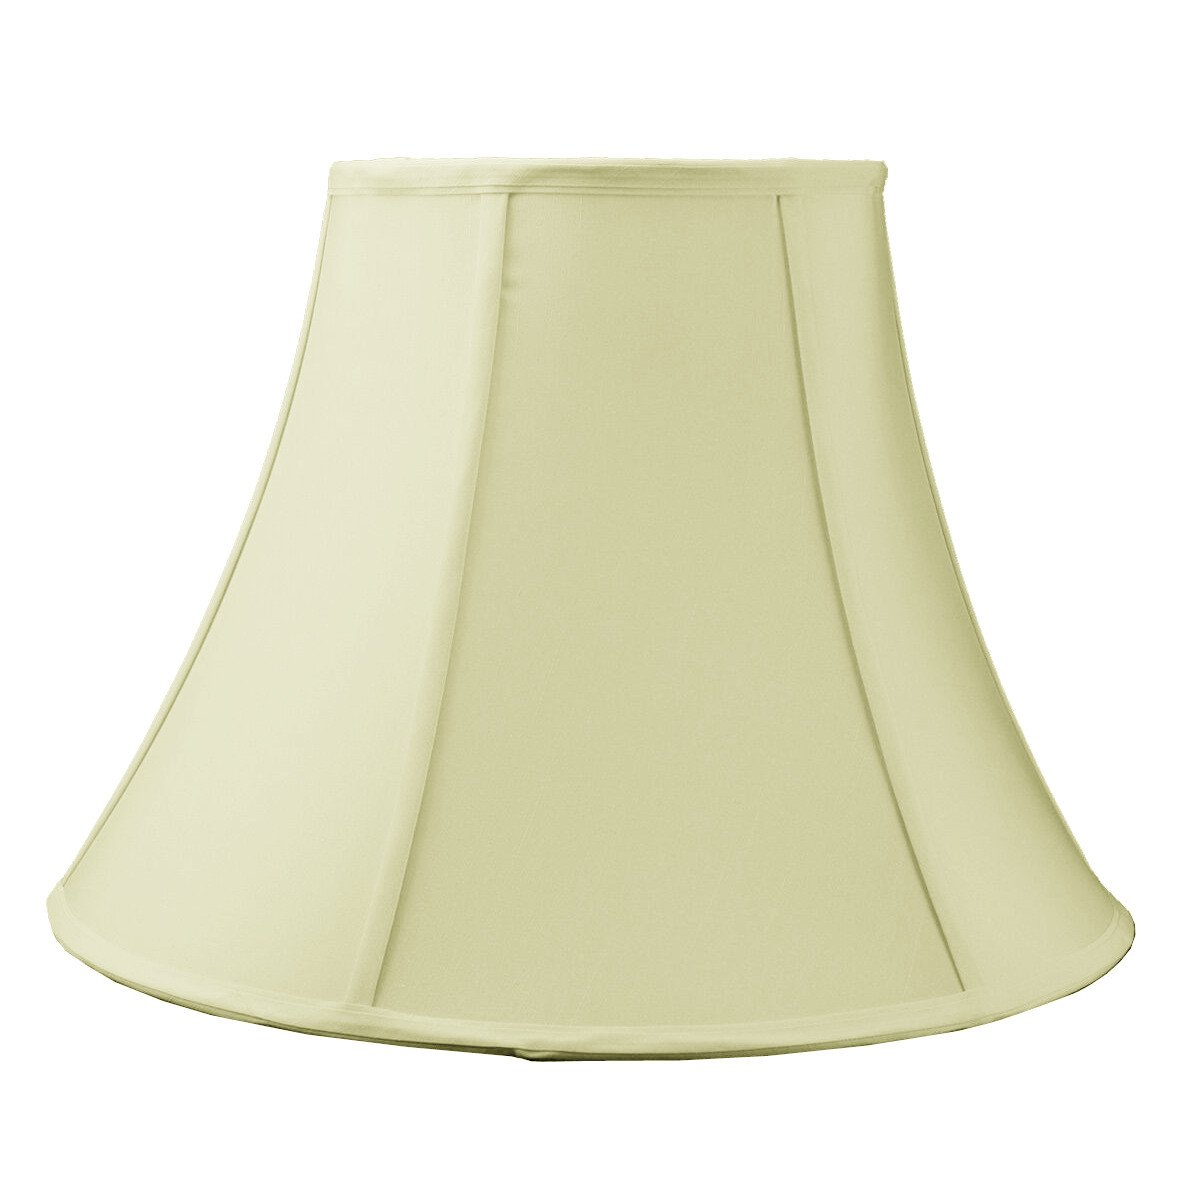 9x18x13.5 Egg Shell Shantung Bell Lampshade with Brass Spider fitter By Home Concept - Perfect for table and floor lamps - Large, Egg Shell